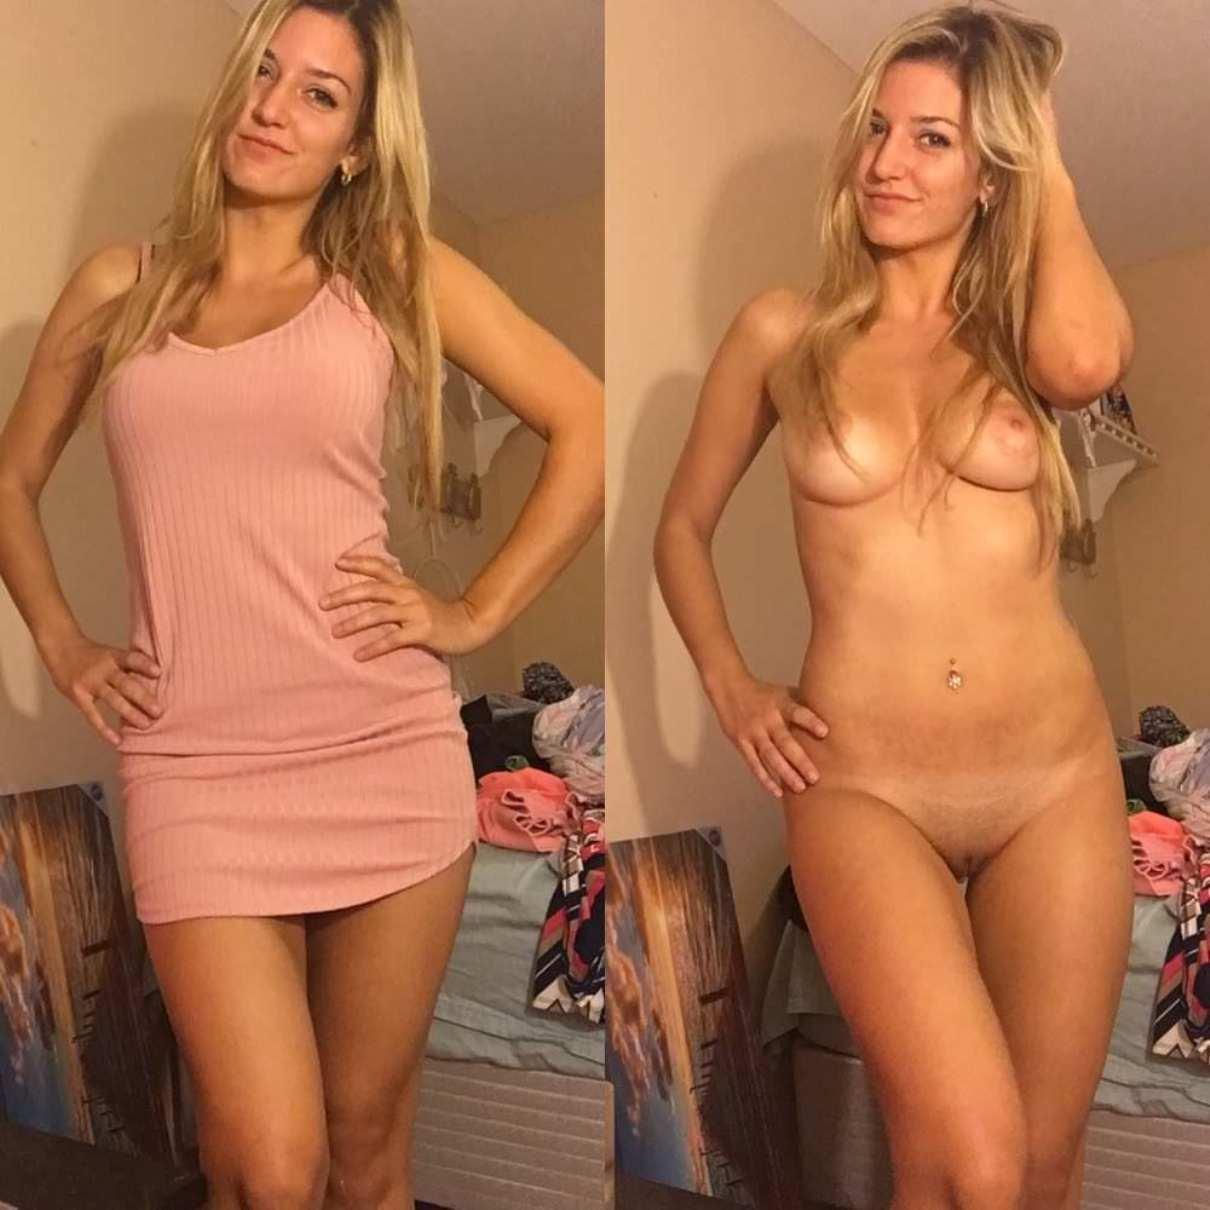 Beautiful amateur girl presents her natural tits and shaved pussy